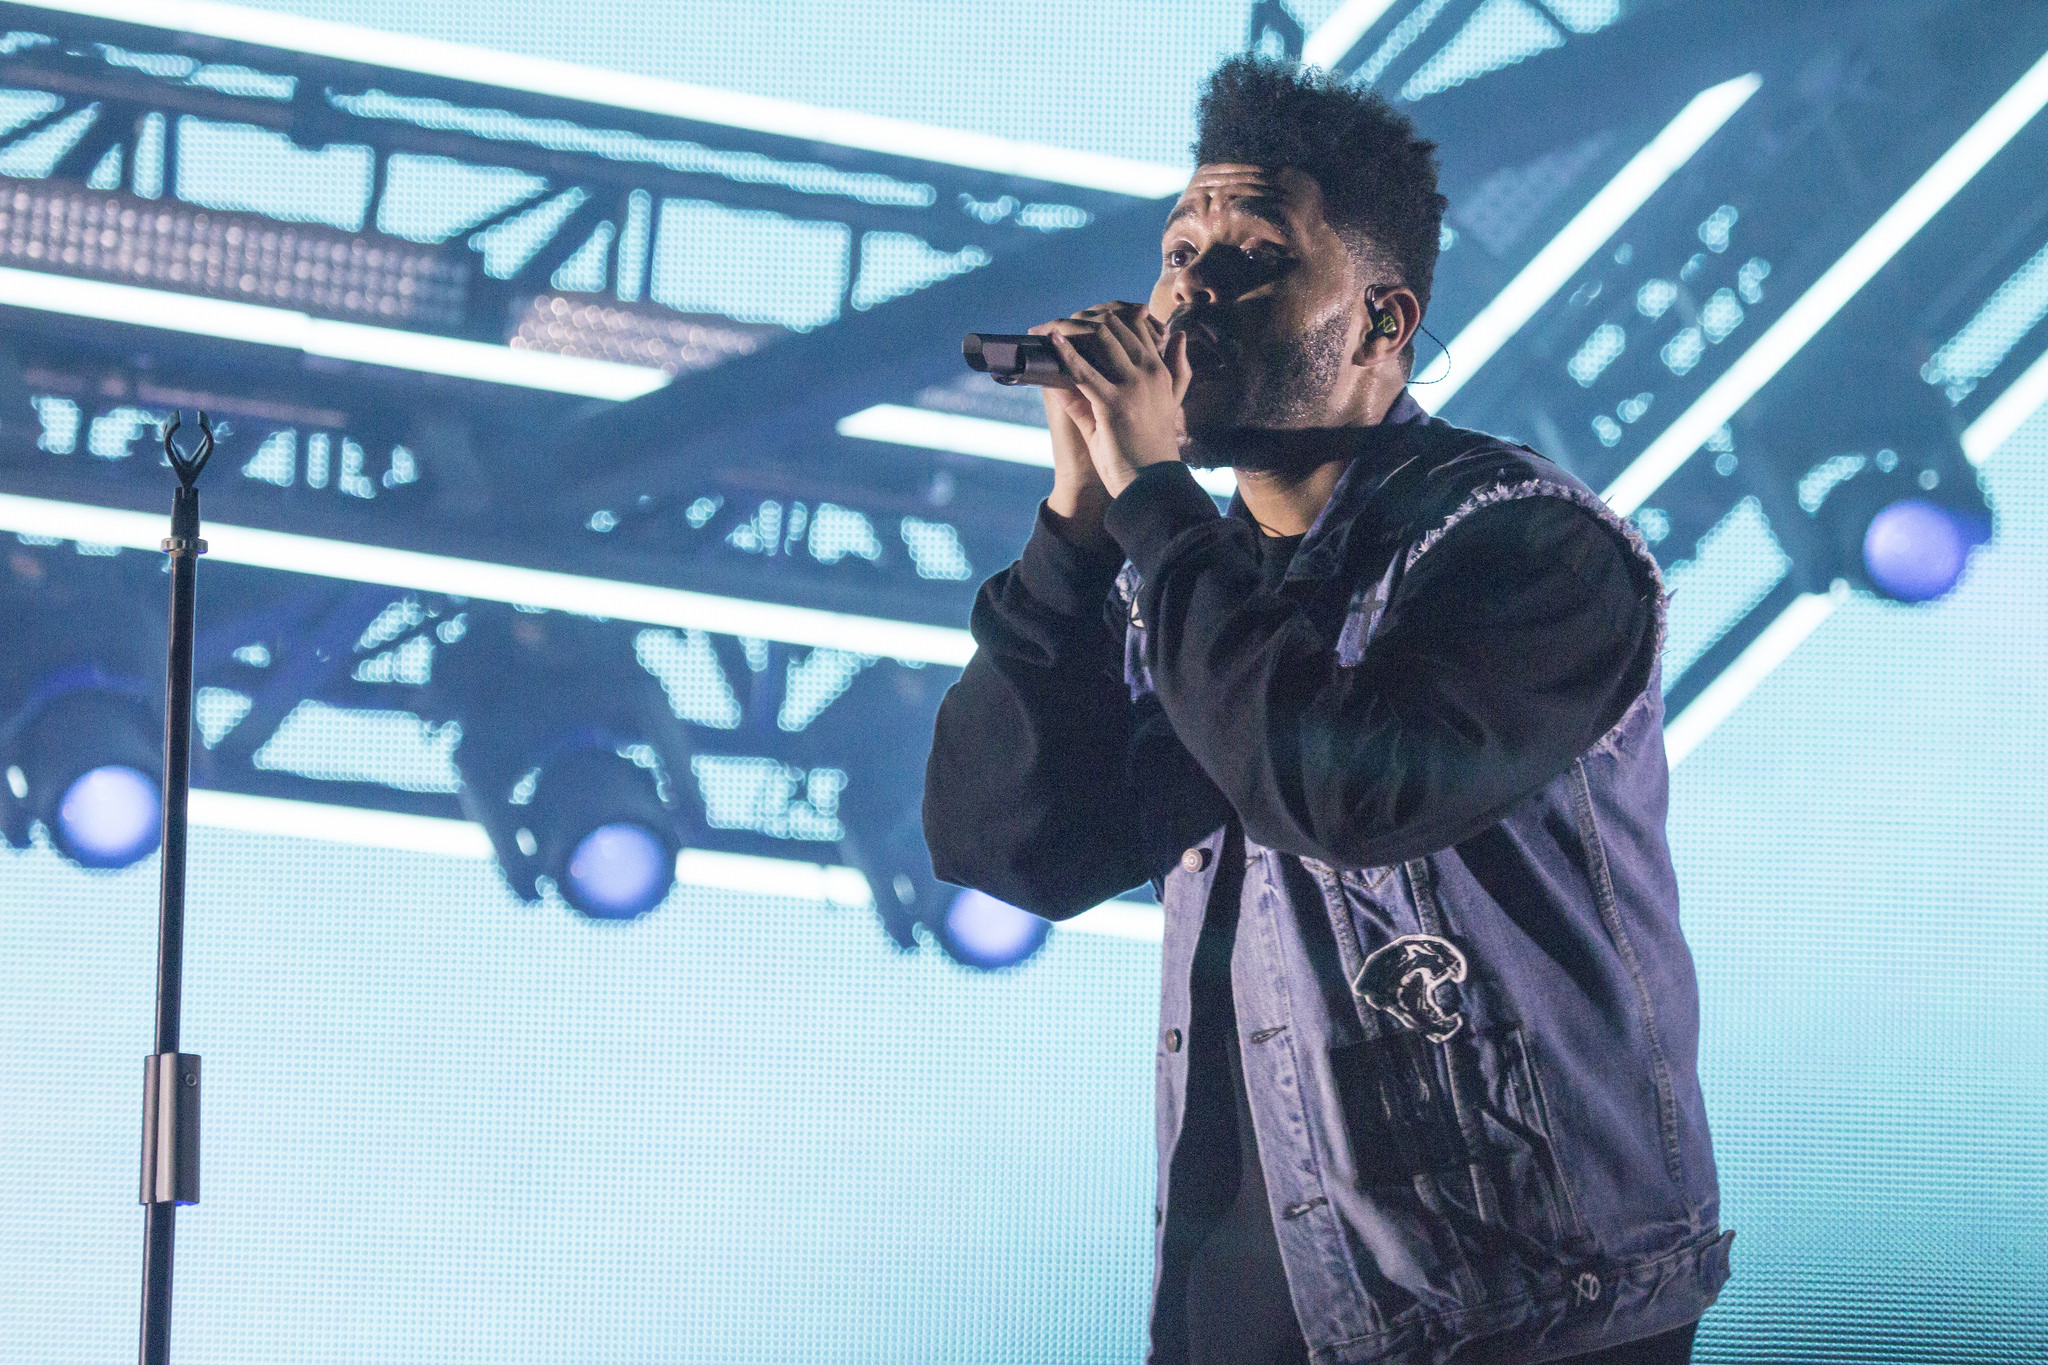 Lollapalooza lineup to include Bruno Mars, Jack White, The Weeknd